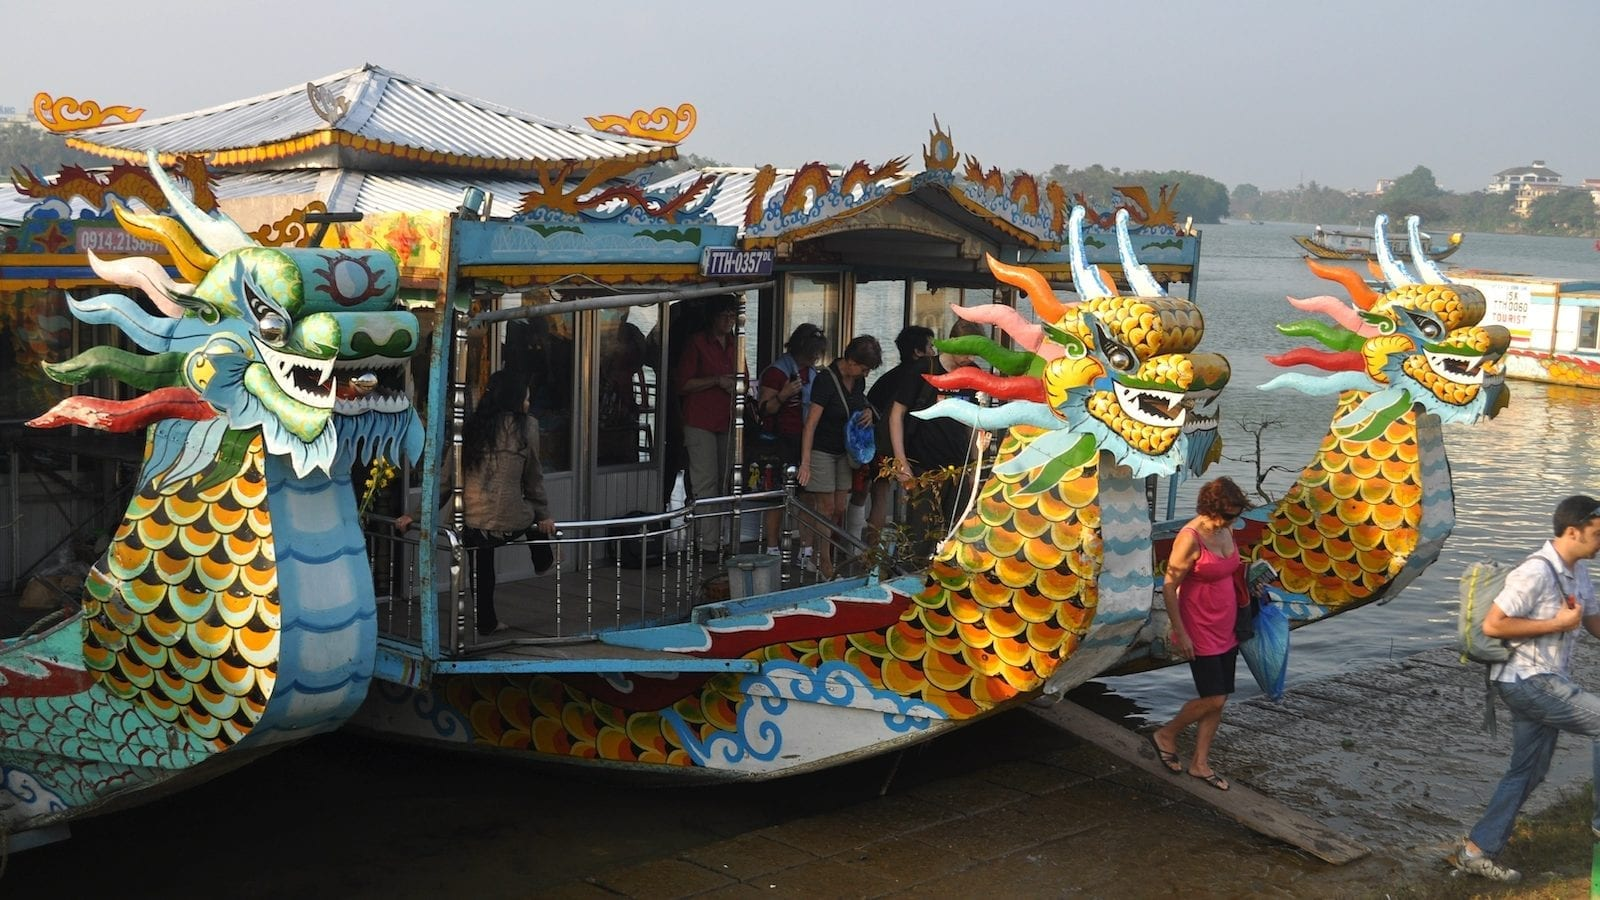 End of the Cruise, Perfume River, Hue